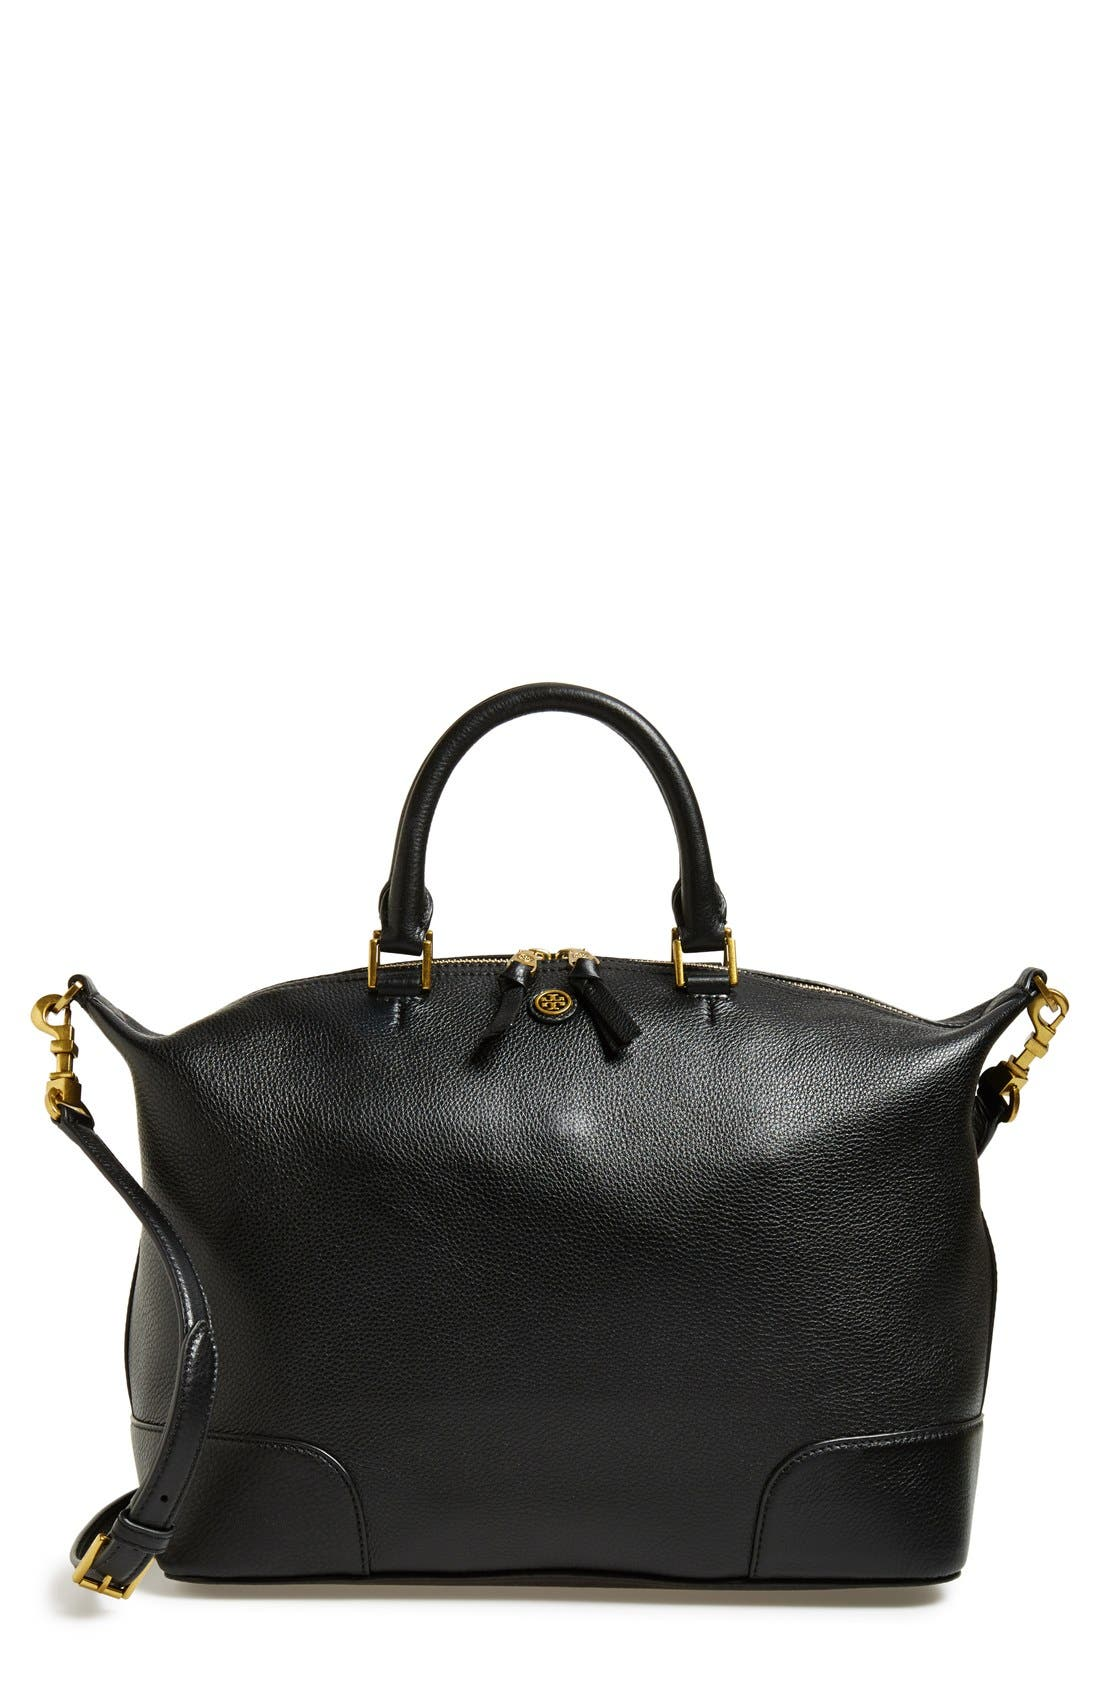 Alternate Image 1 Selected - Tory Burch 'Frances' Slouchy Leather Satchel